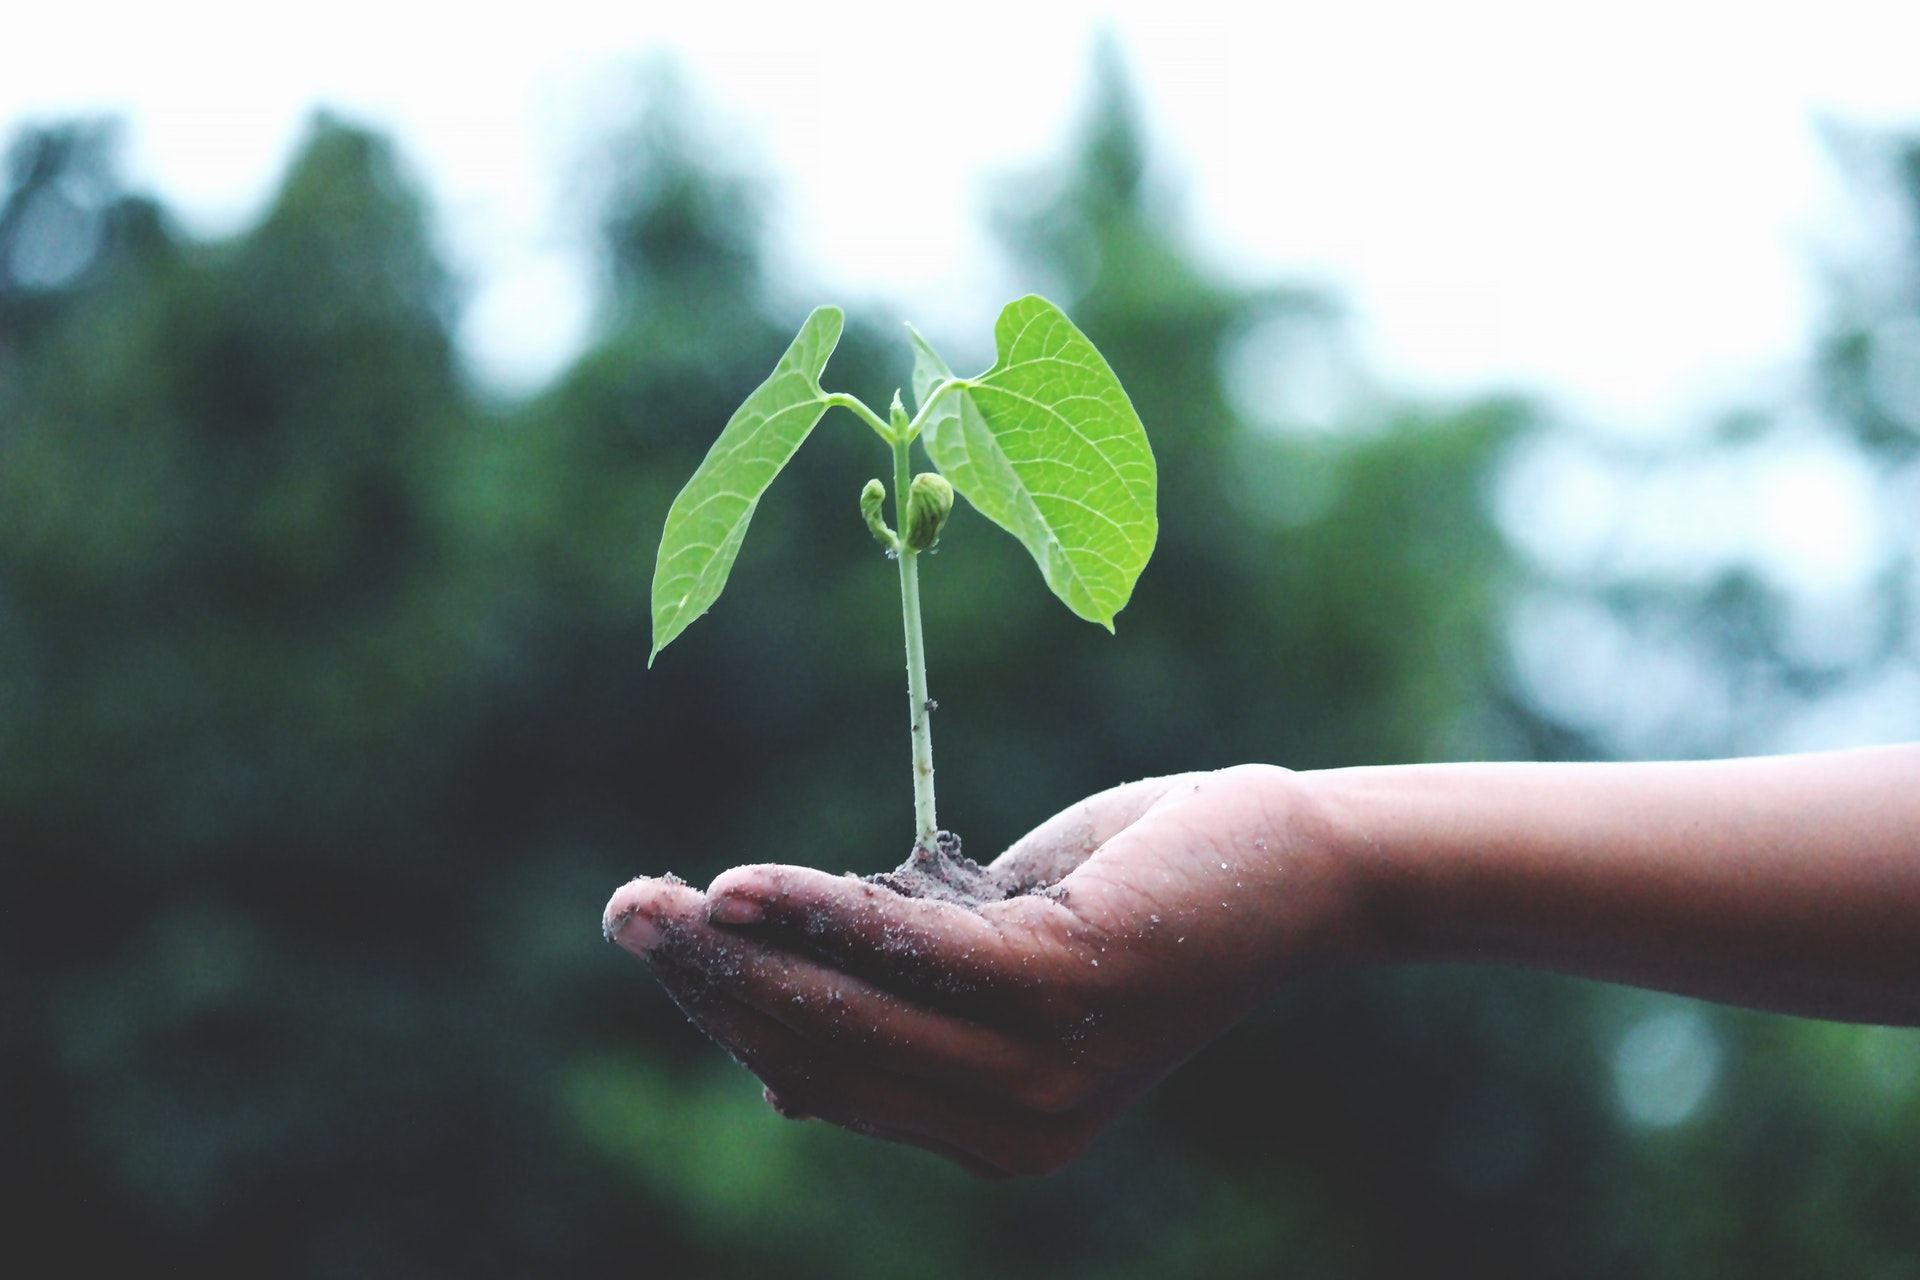 Close-up of a hand holding a small seedling, with two green leaves and two small shoots, with some earth on its roots. In the background are green leaves, out of focus.